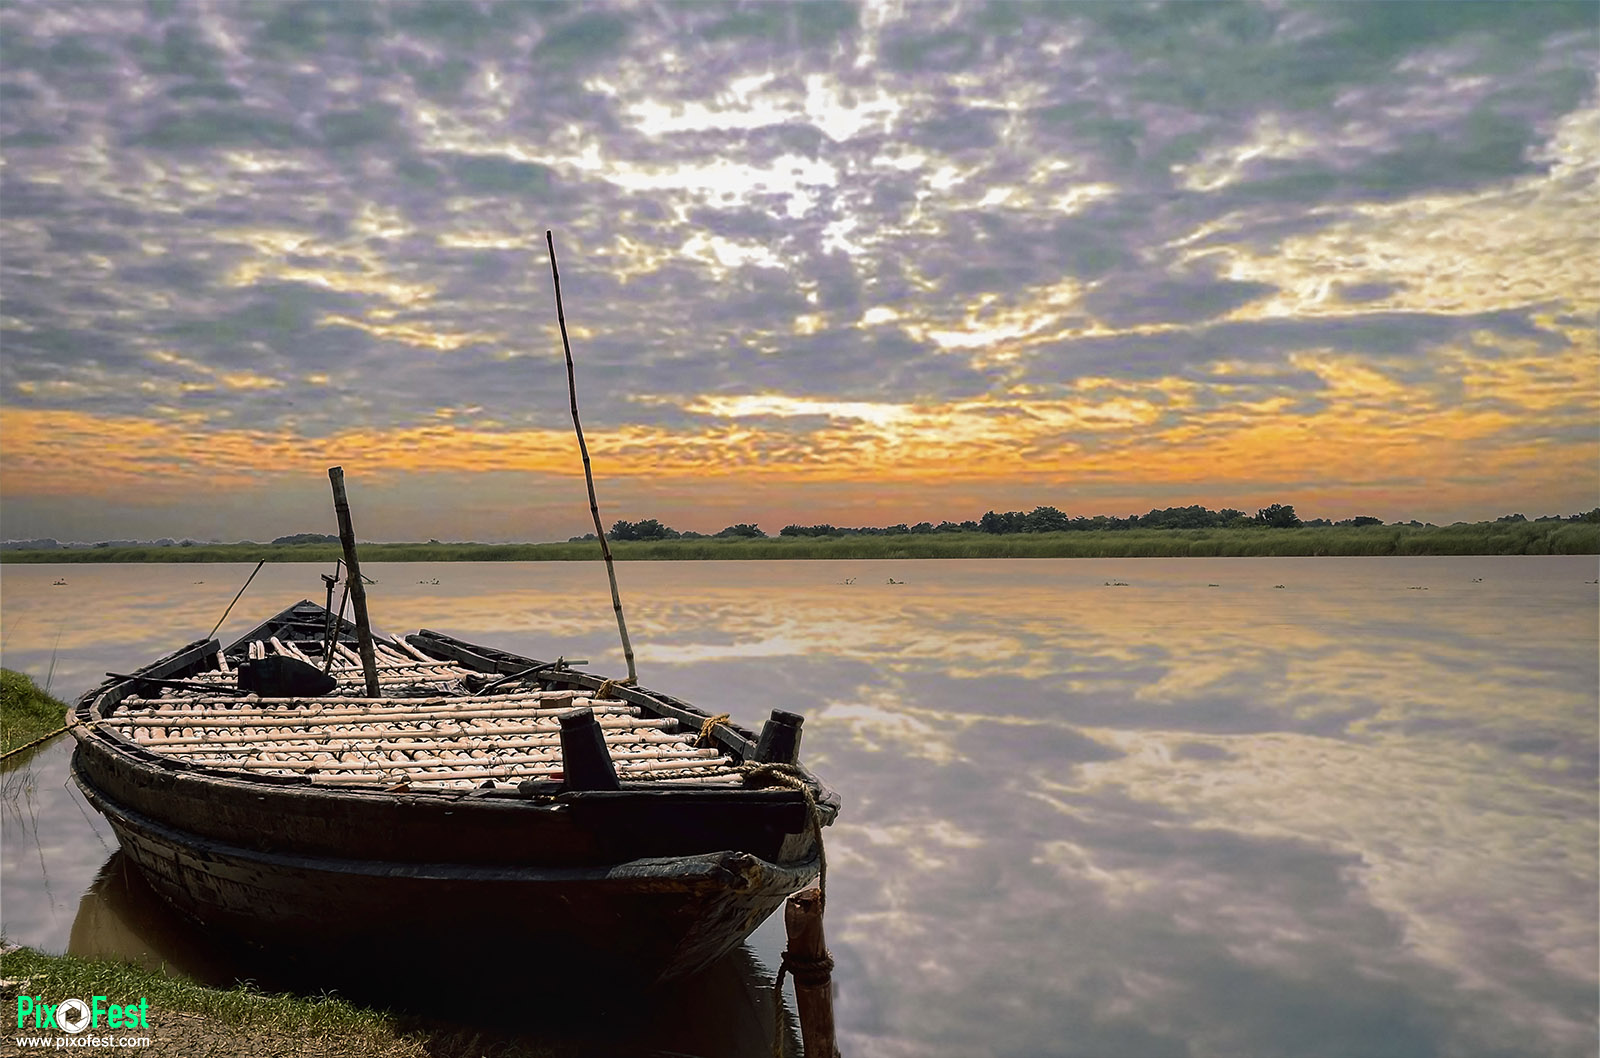 boat,river,sunset,riverboat,landscape,landscapes,landscaping,sky,ganga,pixofest